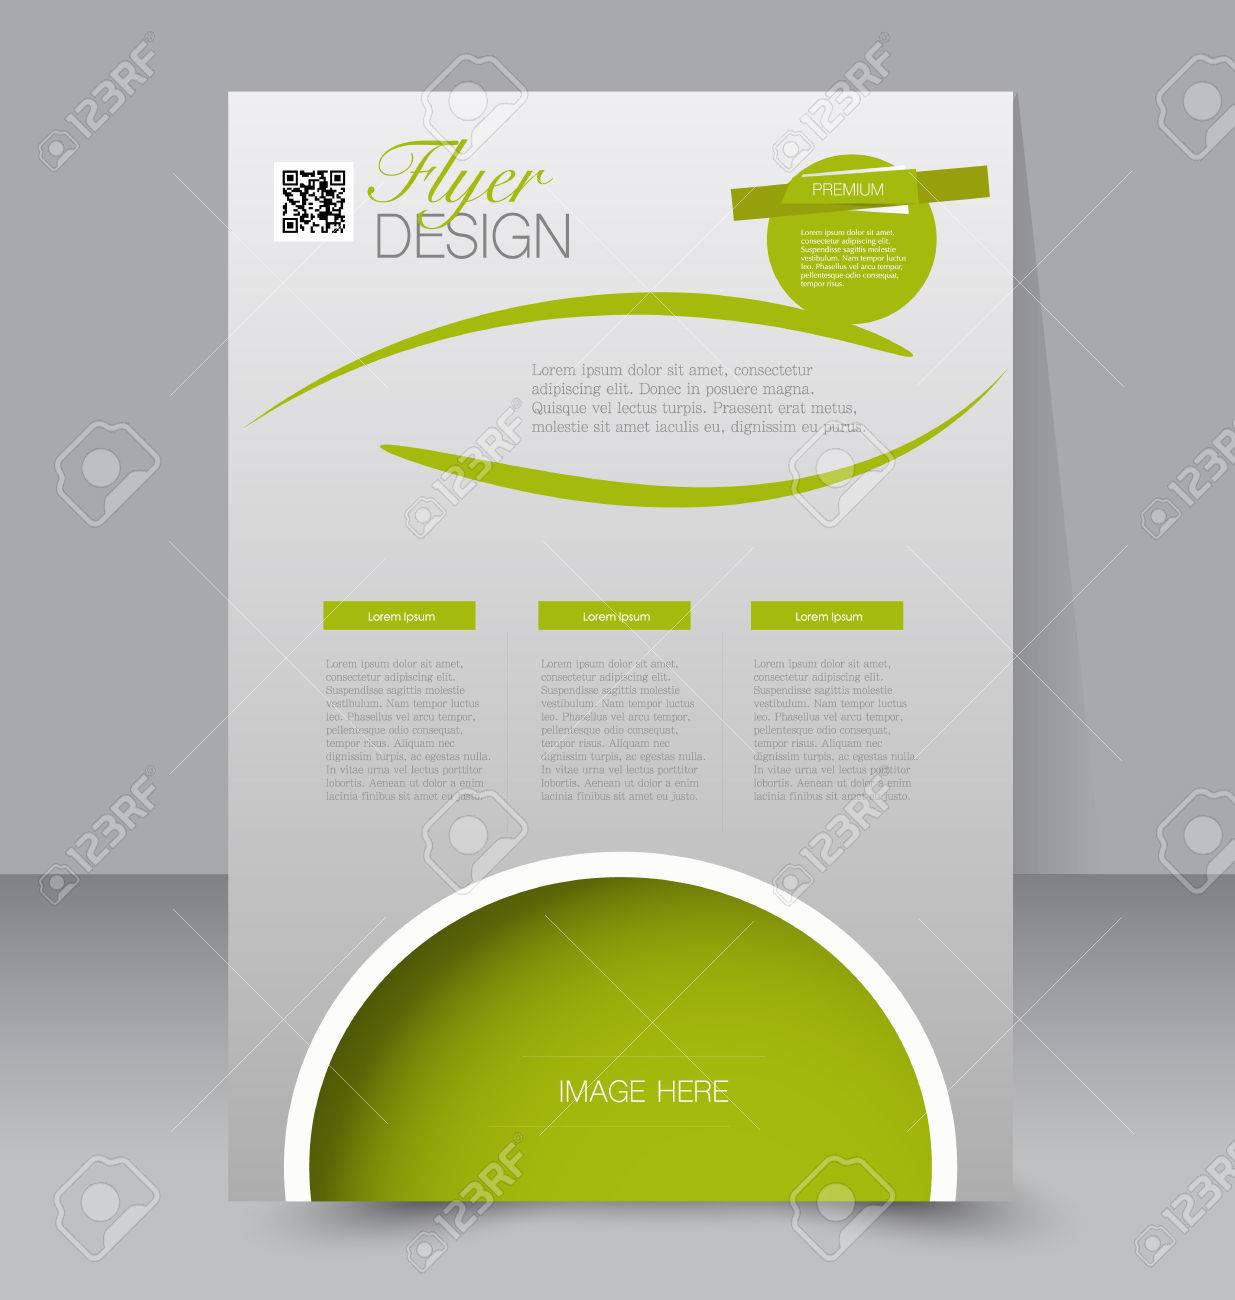 Flyer Template Business Brochure Editable A4 Poster For Design – Green Flyer Template